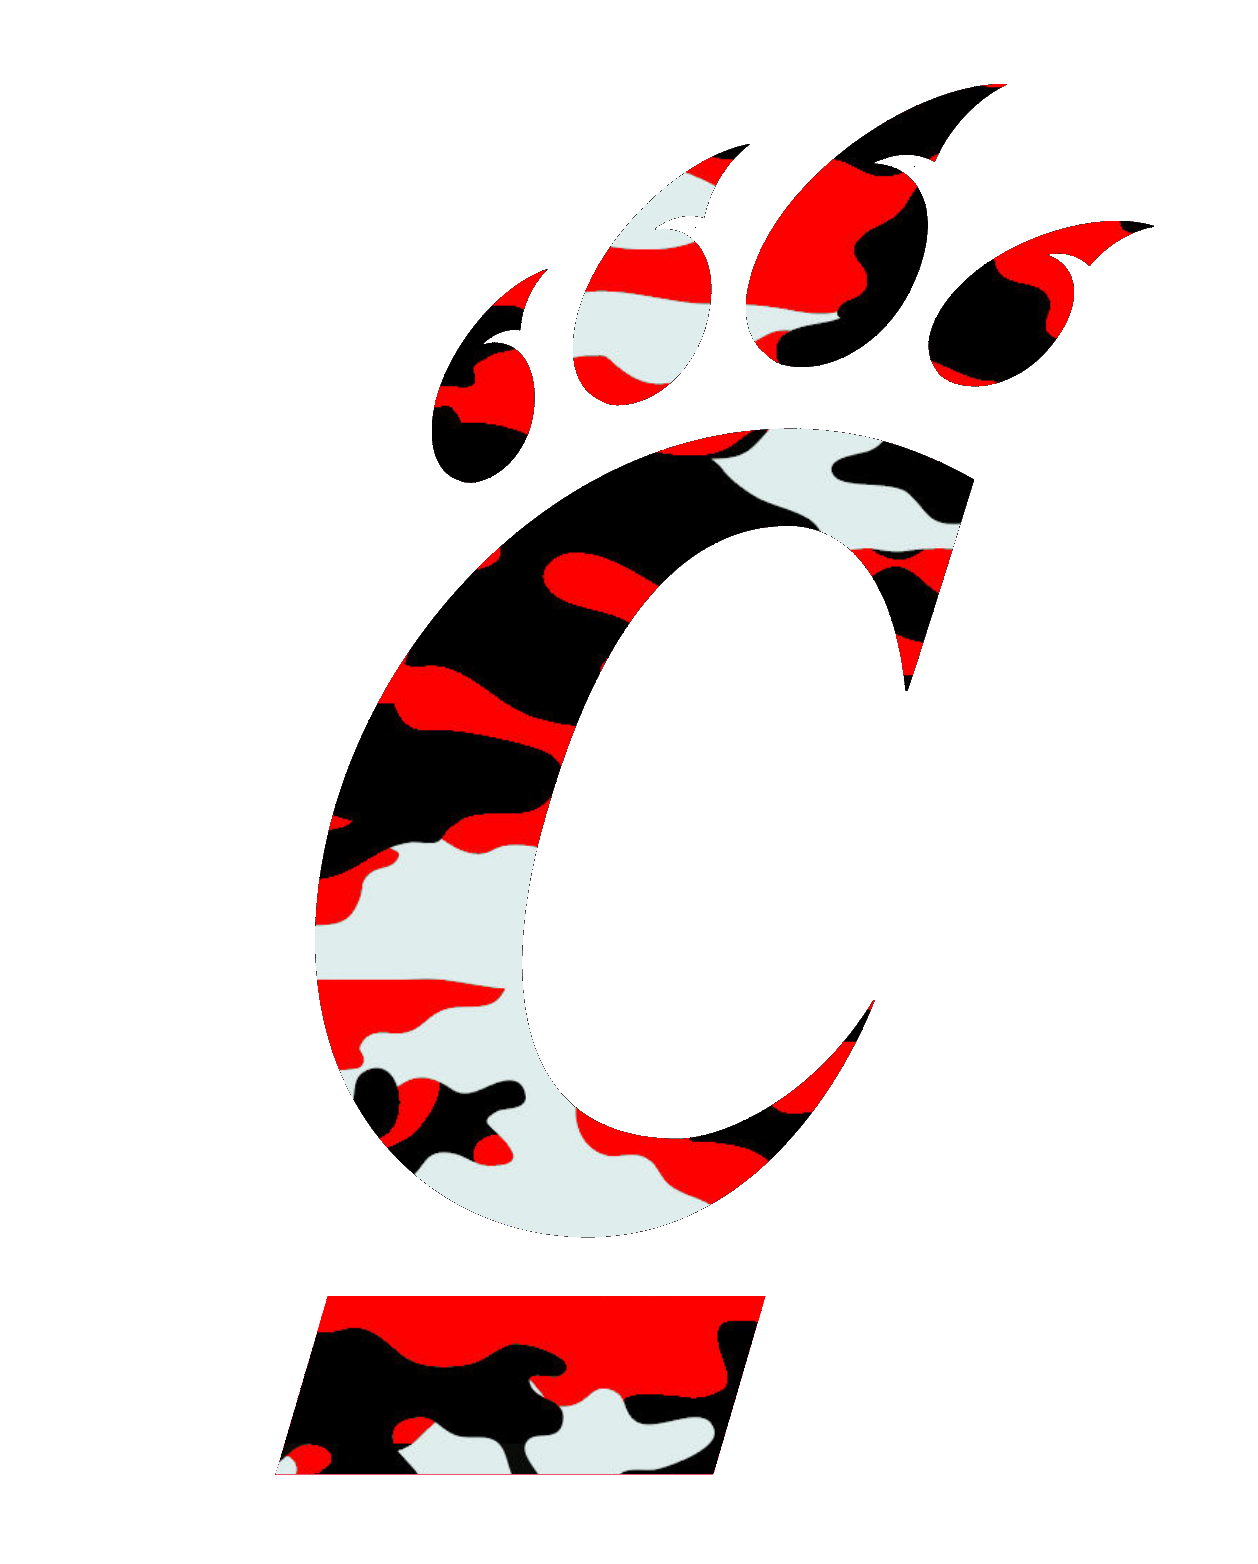 Uc Bearcats Logo Red Camouflage Free Images At Clkercom Vector